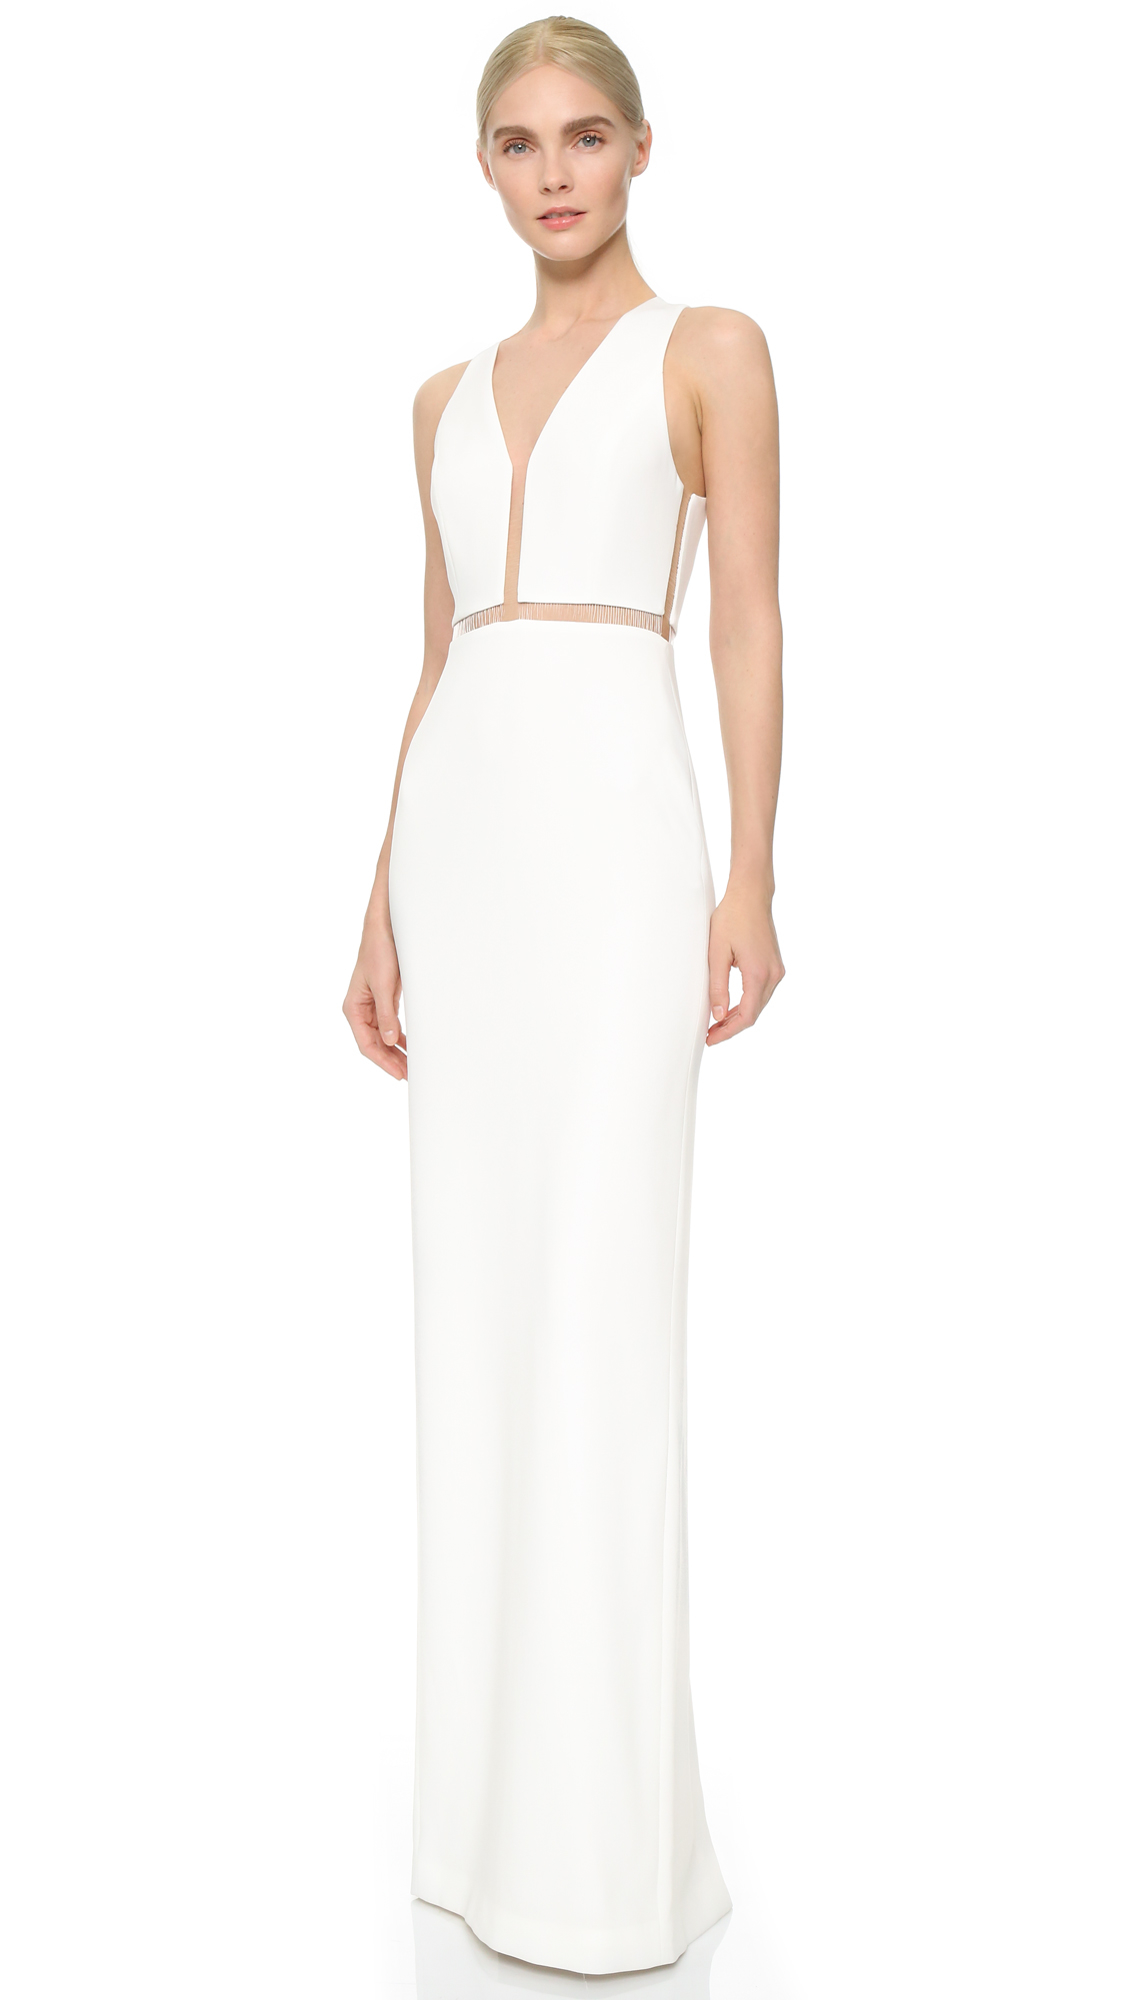 alexander wang v neck gown with fishing line detail in white lyst. Black Bedroom Furniture Sets. Home Design Ideas